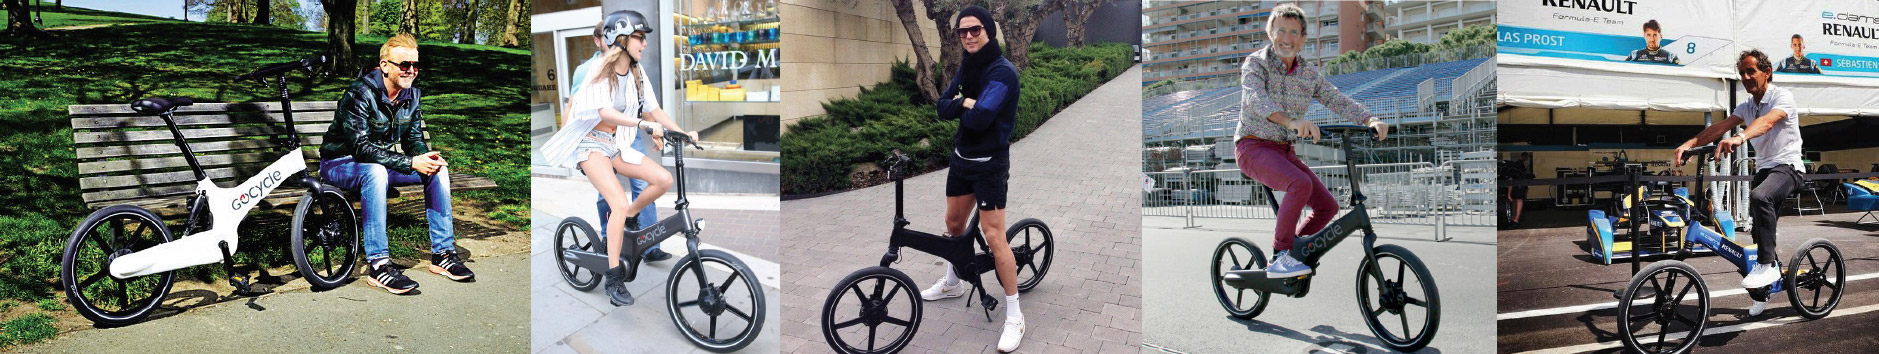 Eddie Jordan, Cristiano Ronaldo using Gocycle